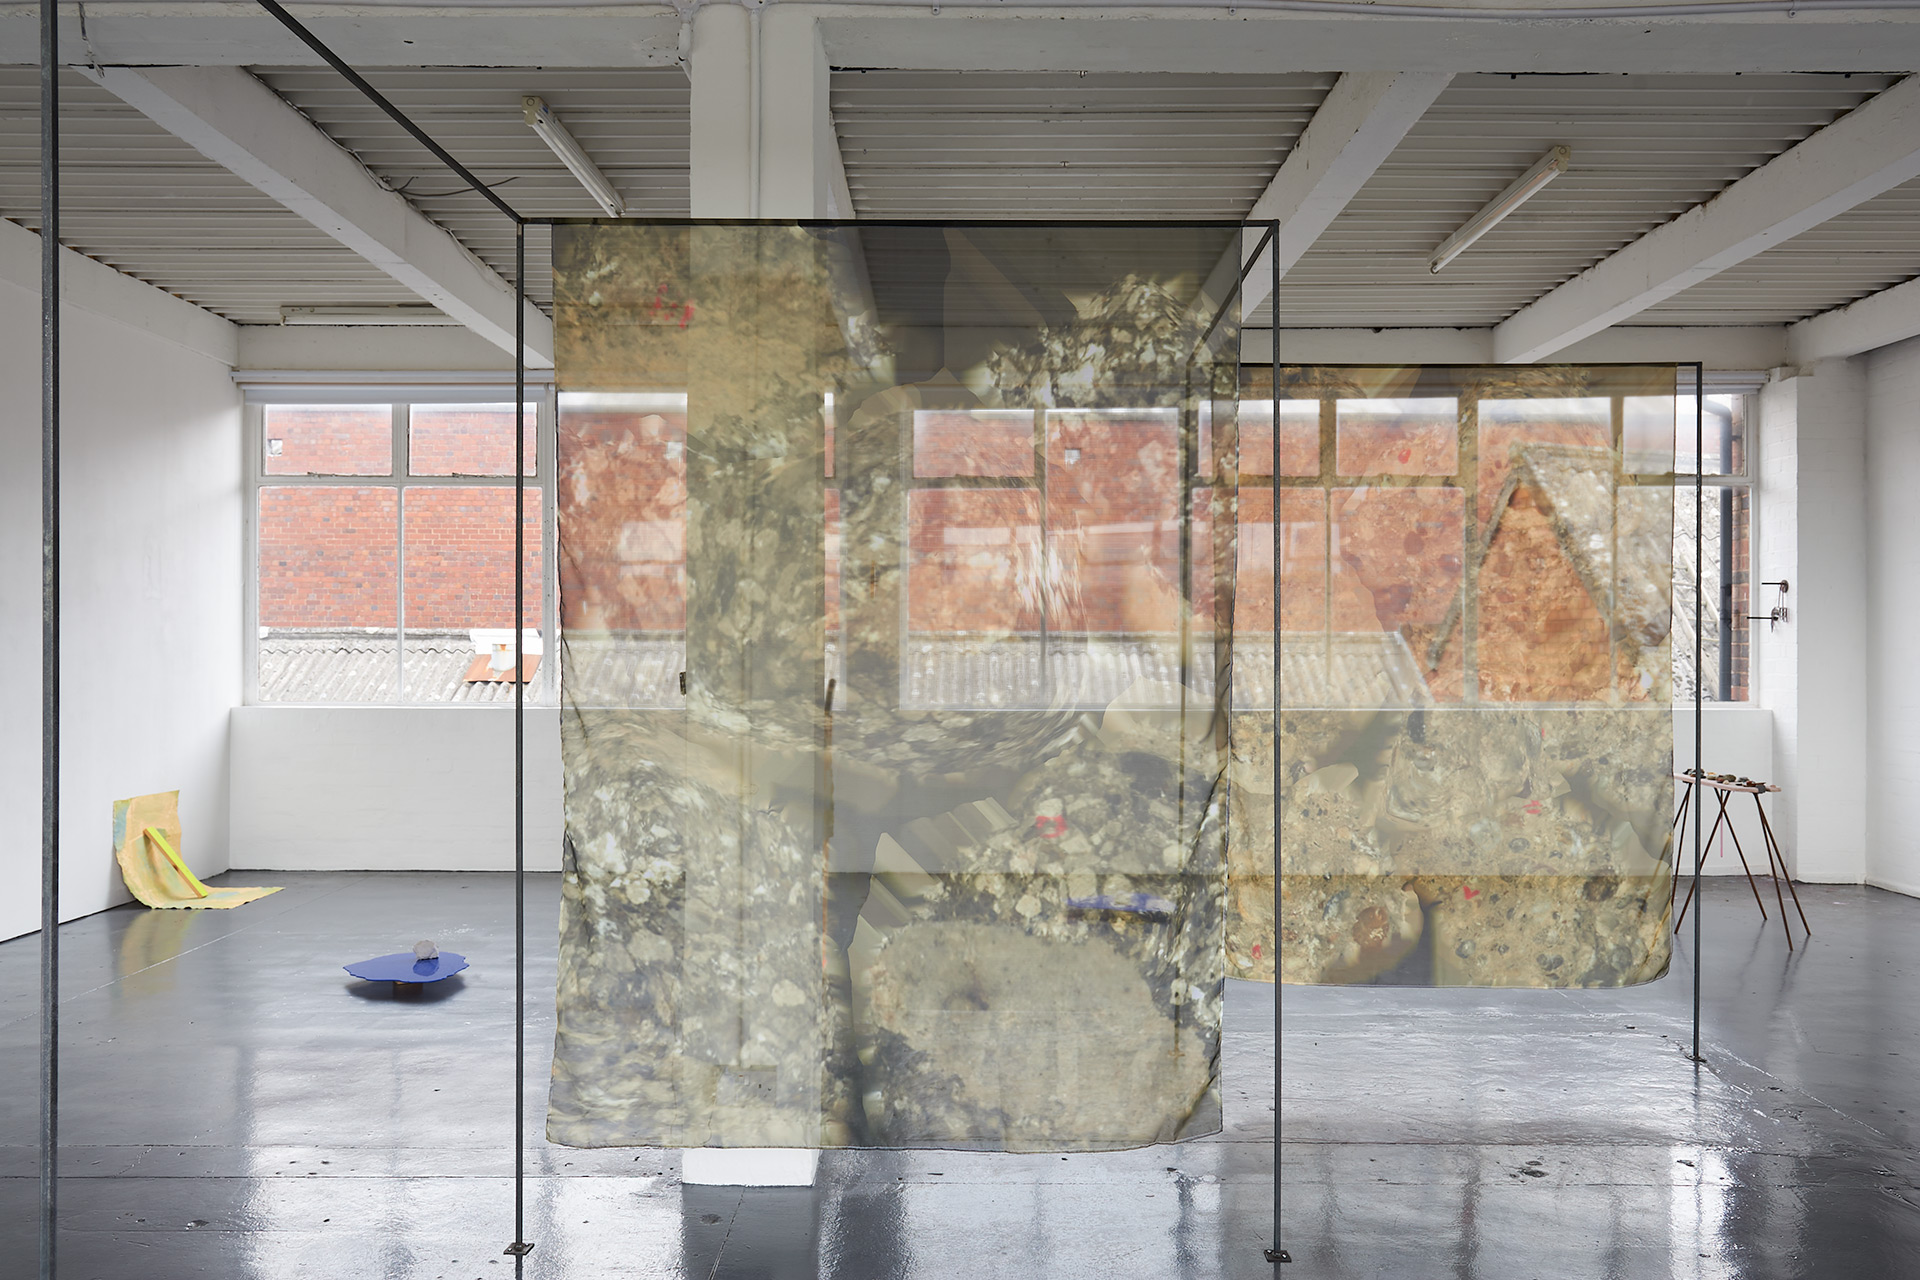 A thin steel frame structure cuts through the gallery, a mesh curtain hangs from the structure, printed with images of rock like forms.